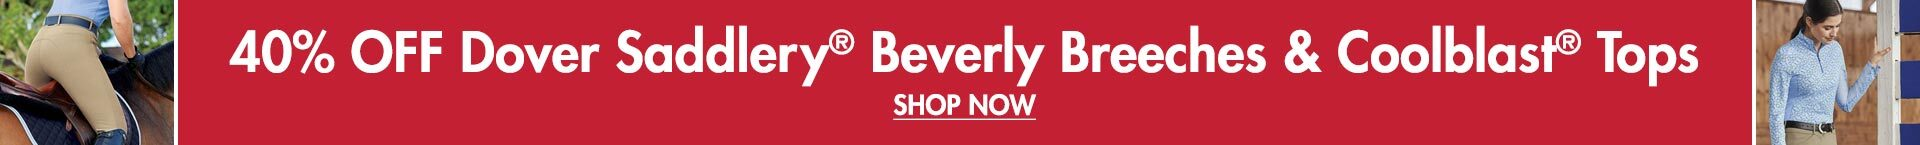 Sub Desktop: 40% Off Beverly Breeches & Coolblast Tops